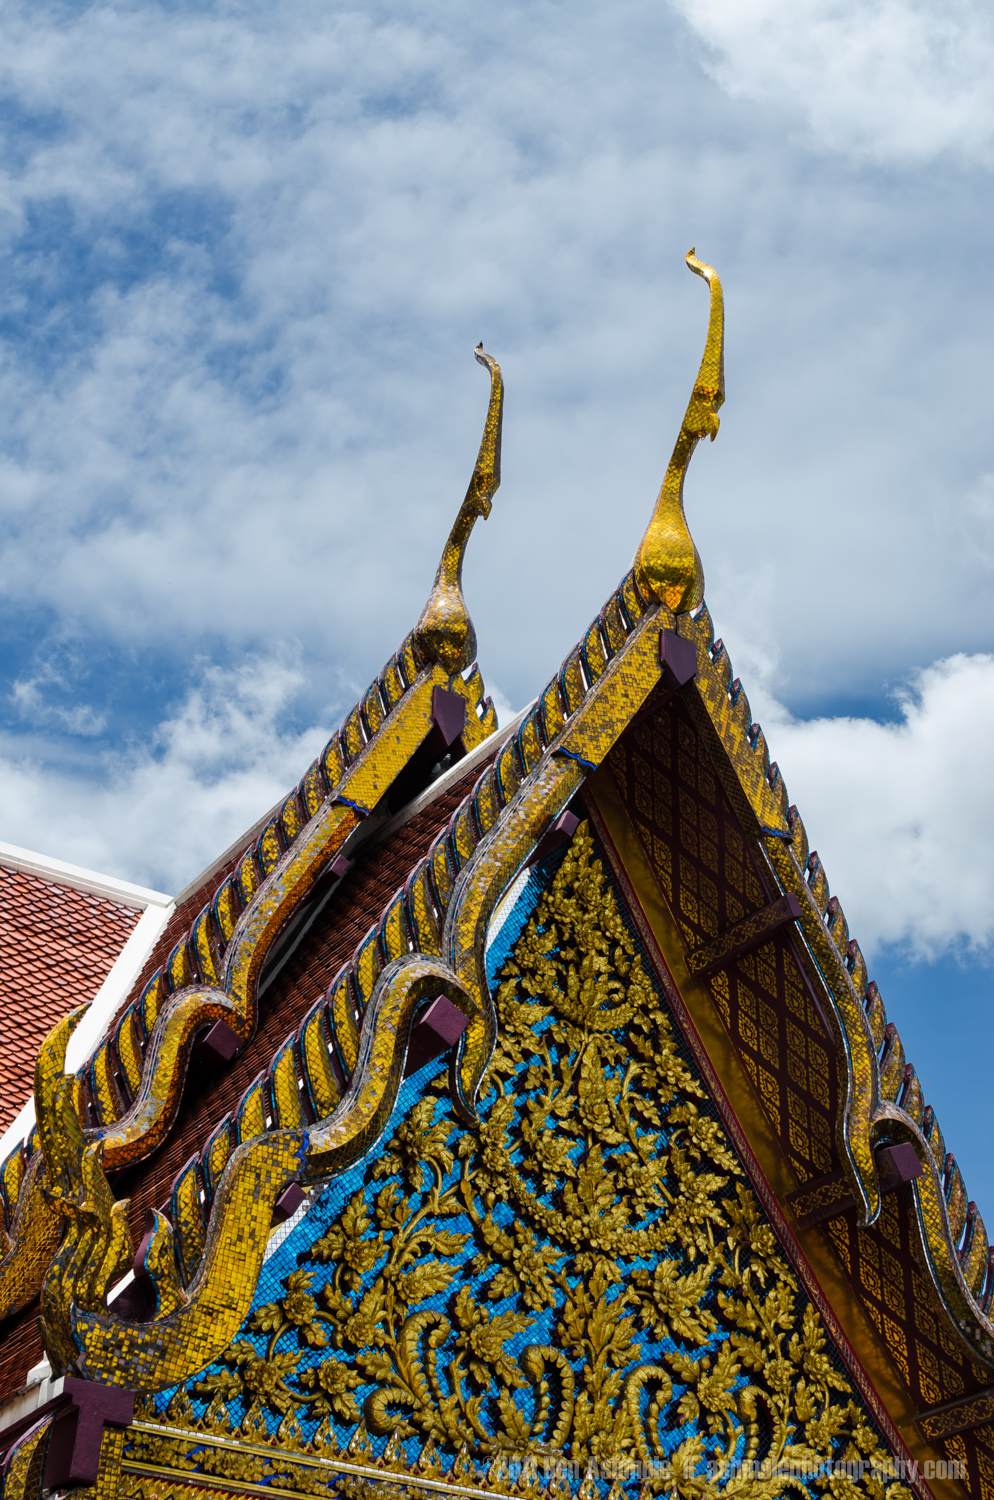 Buddhist Temple Roofing Detail, Chiang Mai, Thailand, Ben Ashmol